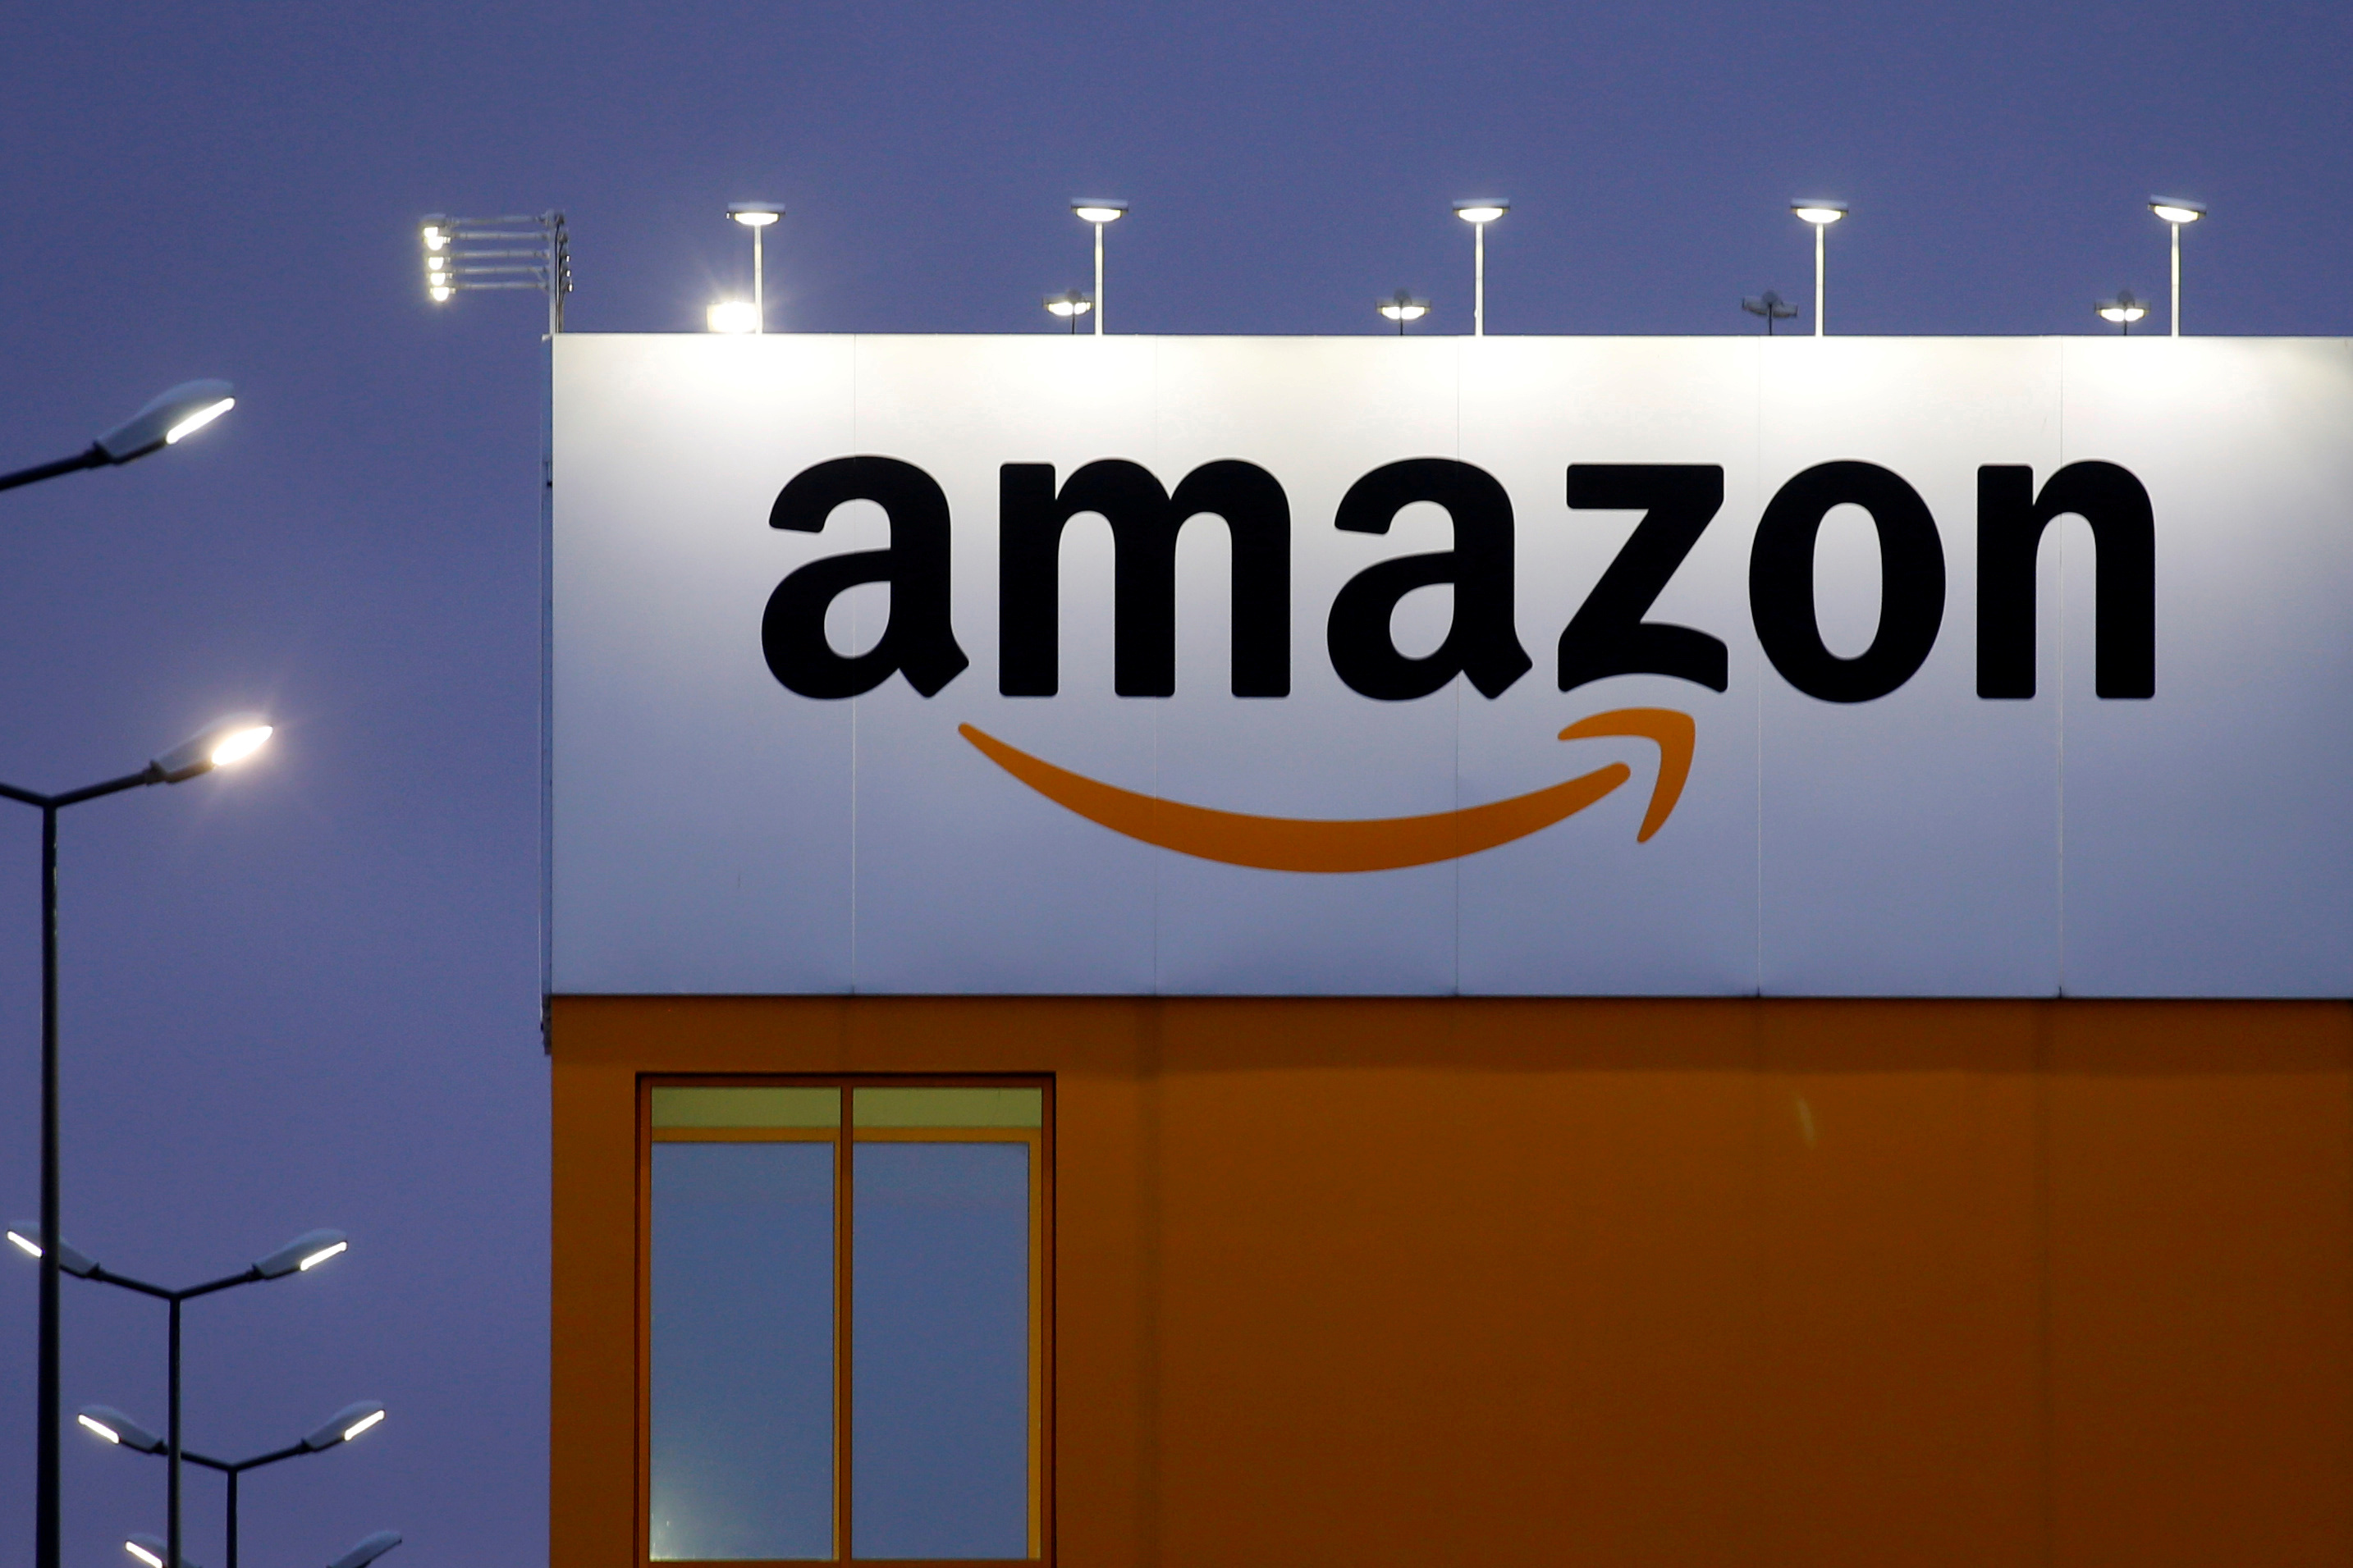 The logo of Amazon is seen at the company logistics center in Lauwin-Planque, northern France. REUTERS/Pascal Rossignol